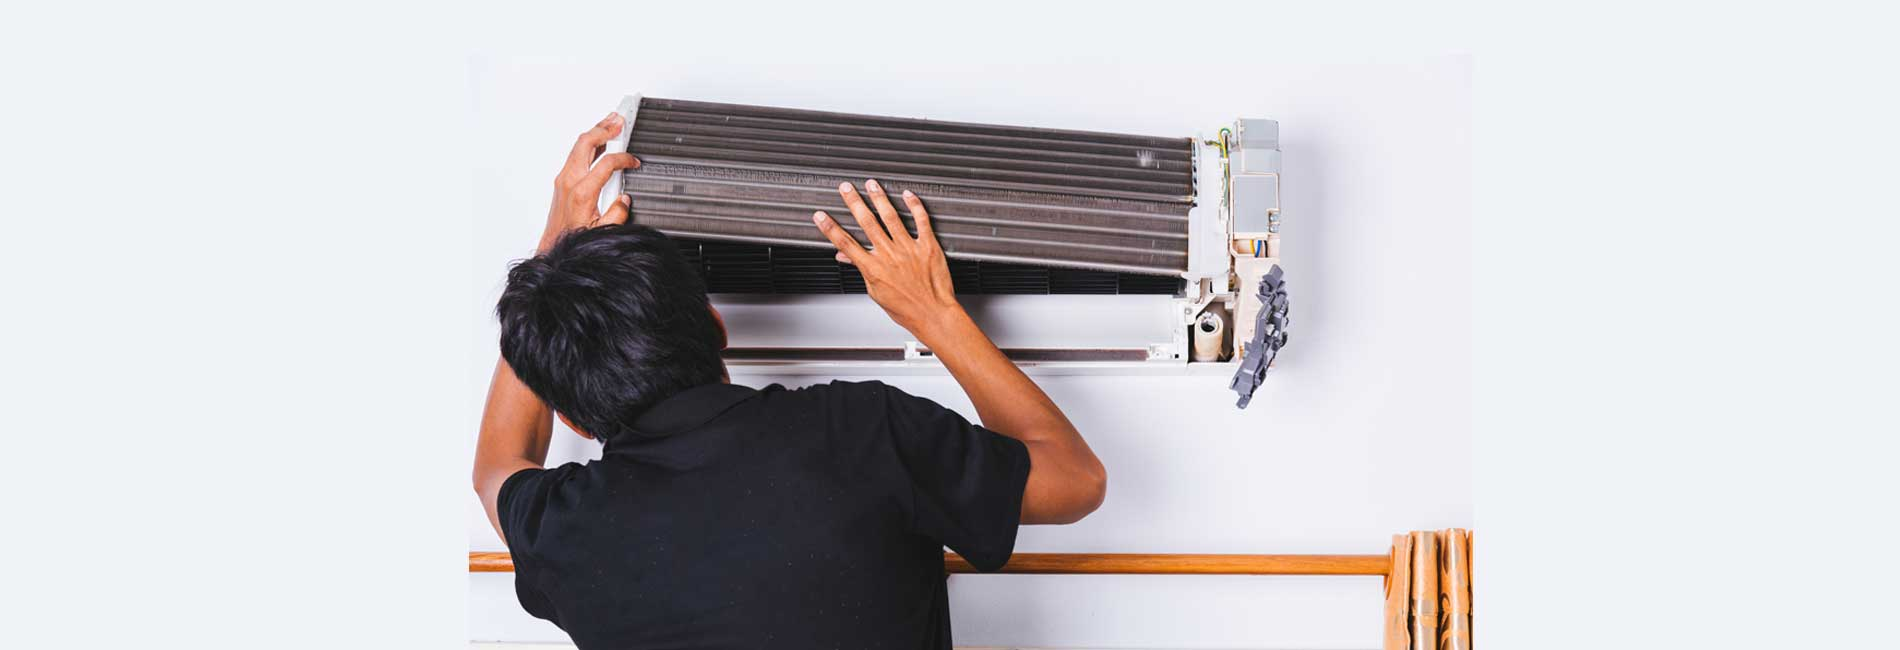 Bluestar AC Uninstallation in Kottivakkam